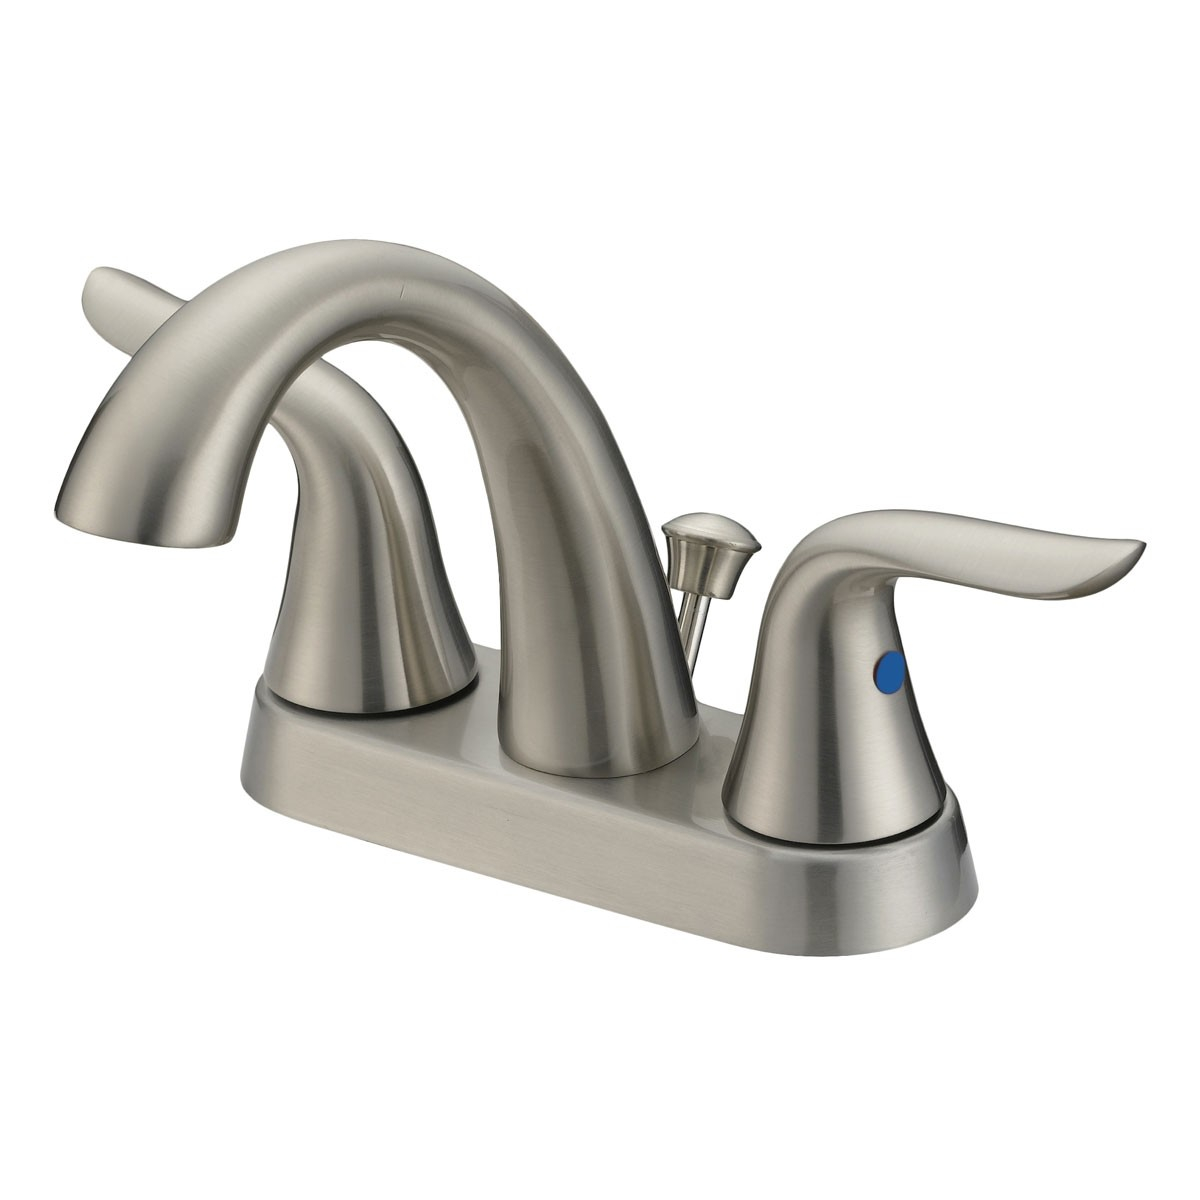 Lb5b Barbathroom Faucet Brushed Nickel Finish 4 In Spread for sizing 1200 X 1200